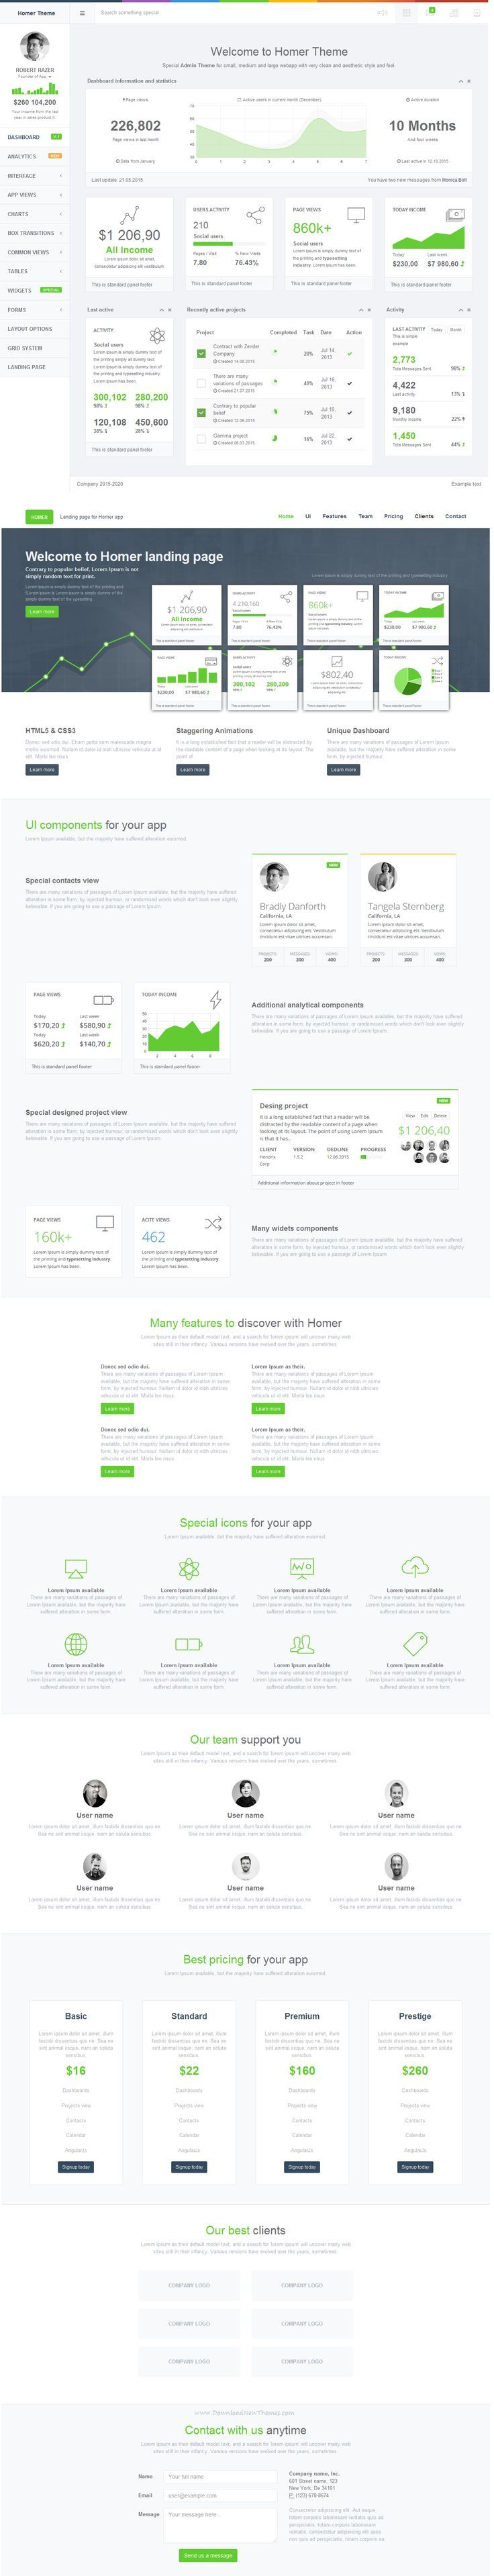 HOMER Admin Theme is a premium admin dashboard theme with flat design concept. It is fully responsive admin dashboard template built with Bootstrap 3+ Framework, HTML5 and CSS3, LESS, Media query, AngularJS, Grunt and Bower. It has a main collection of reusable UI components and integrated with latest jQuery plugins. #webdesign #admintemplate Live Preview & Download https://wrapbootstrap.com/theme/homer-responsive-admin-theme-WB055J451?ref=datasata